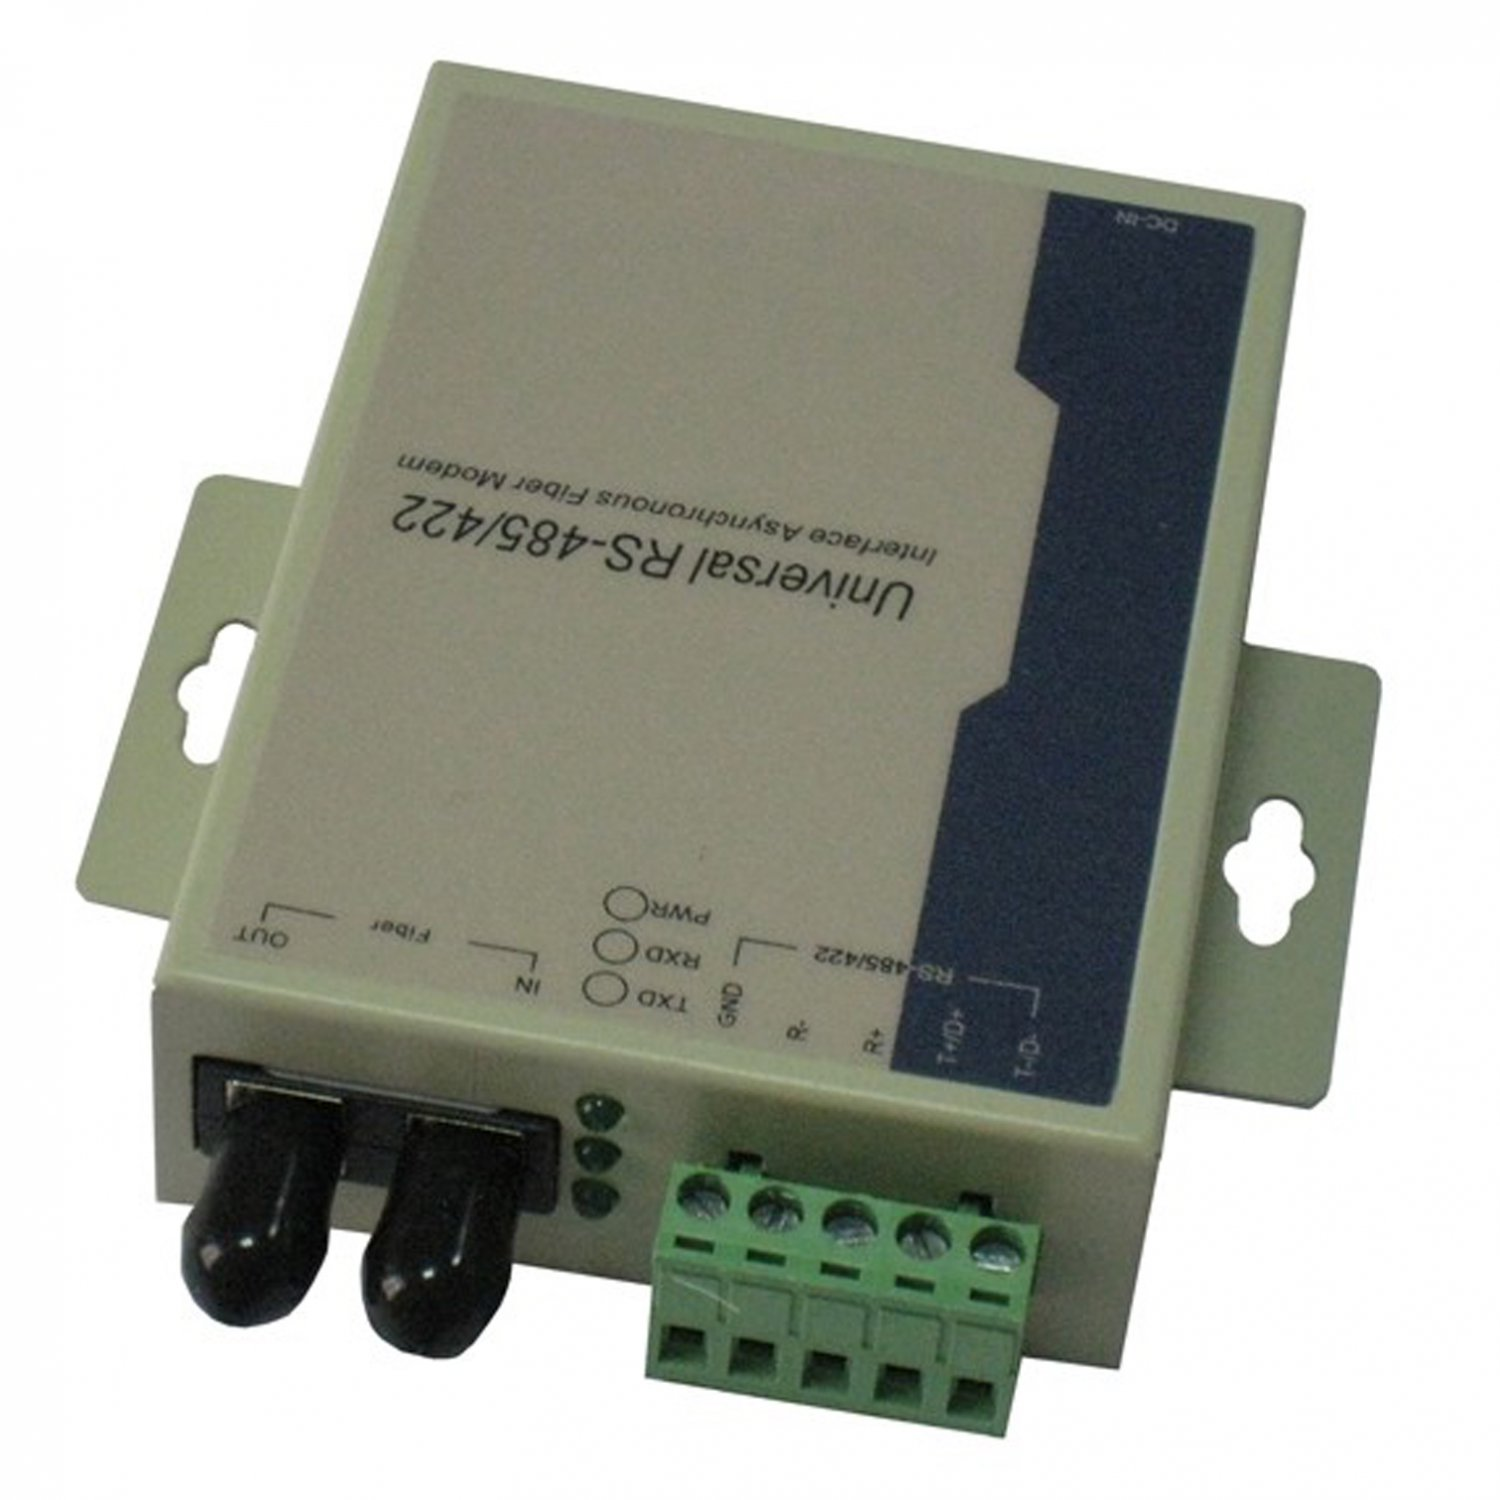 RS-485 RS-422 serial optic fiber MODEM